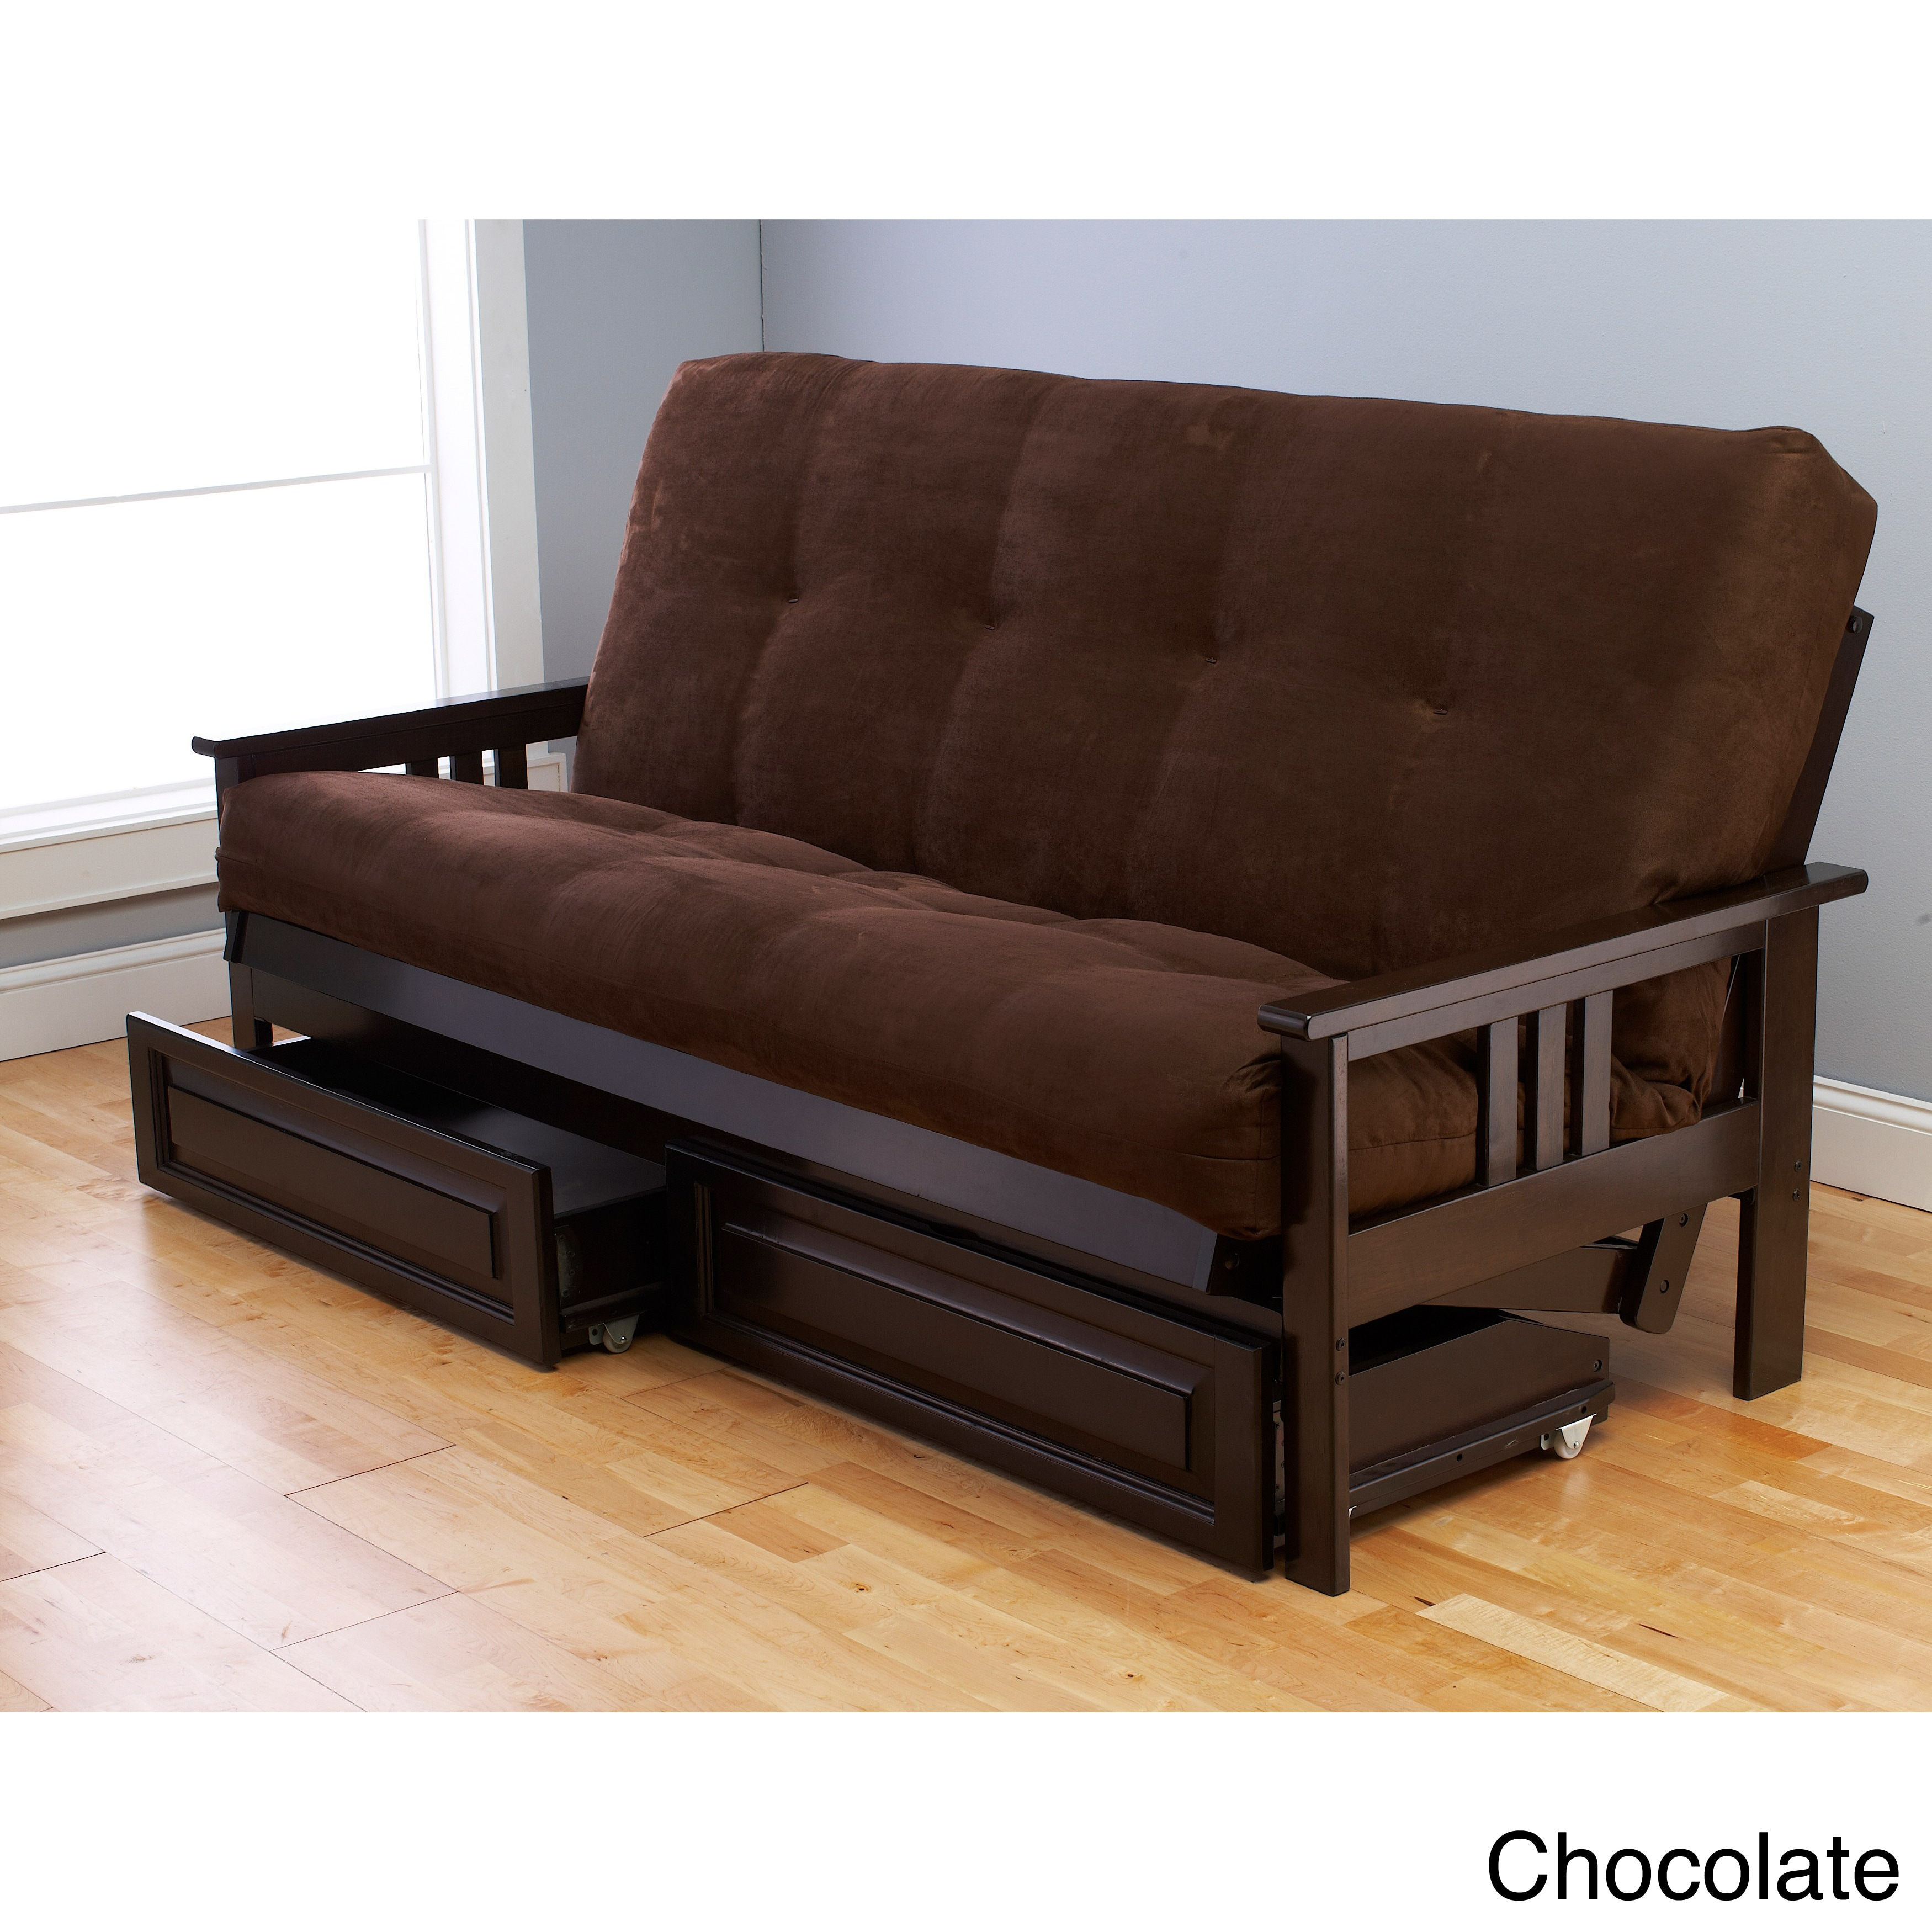 Beli Mont Espresso Wood Storage Futon with Mattress at Sears.com